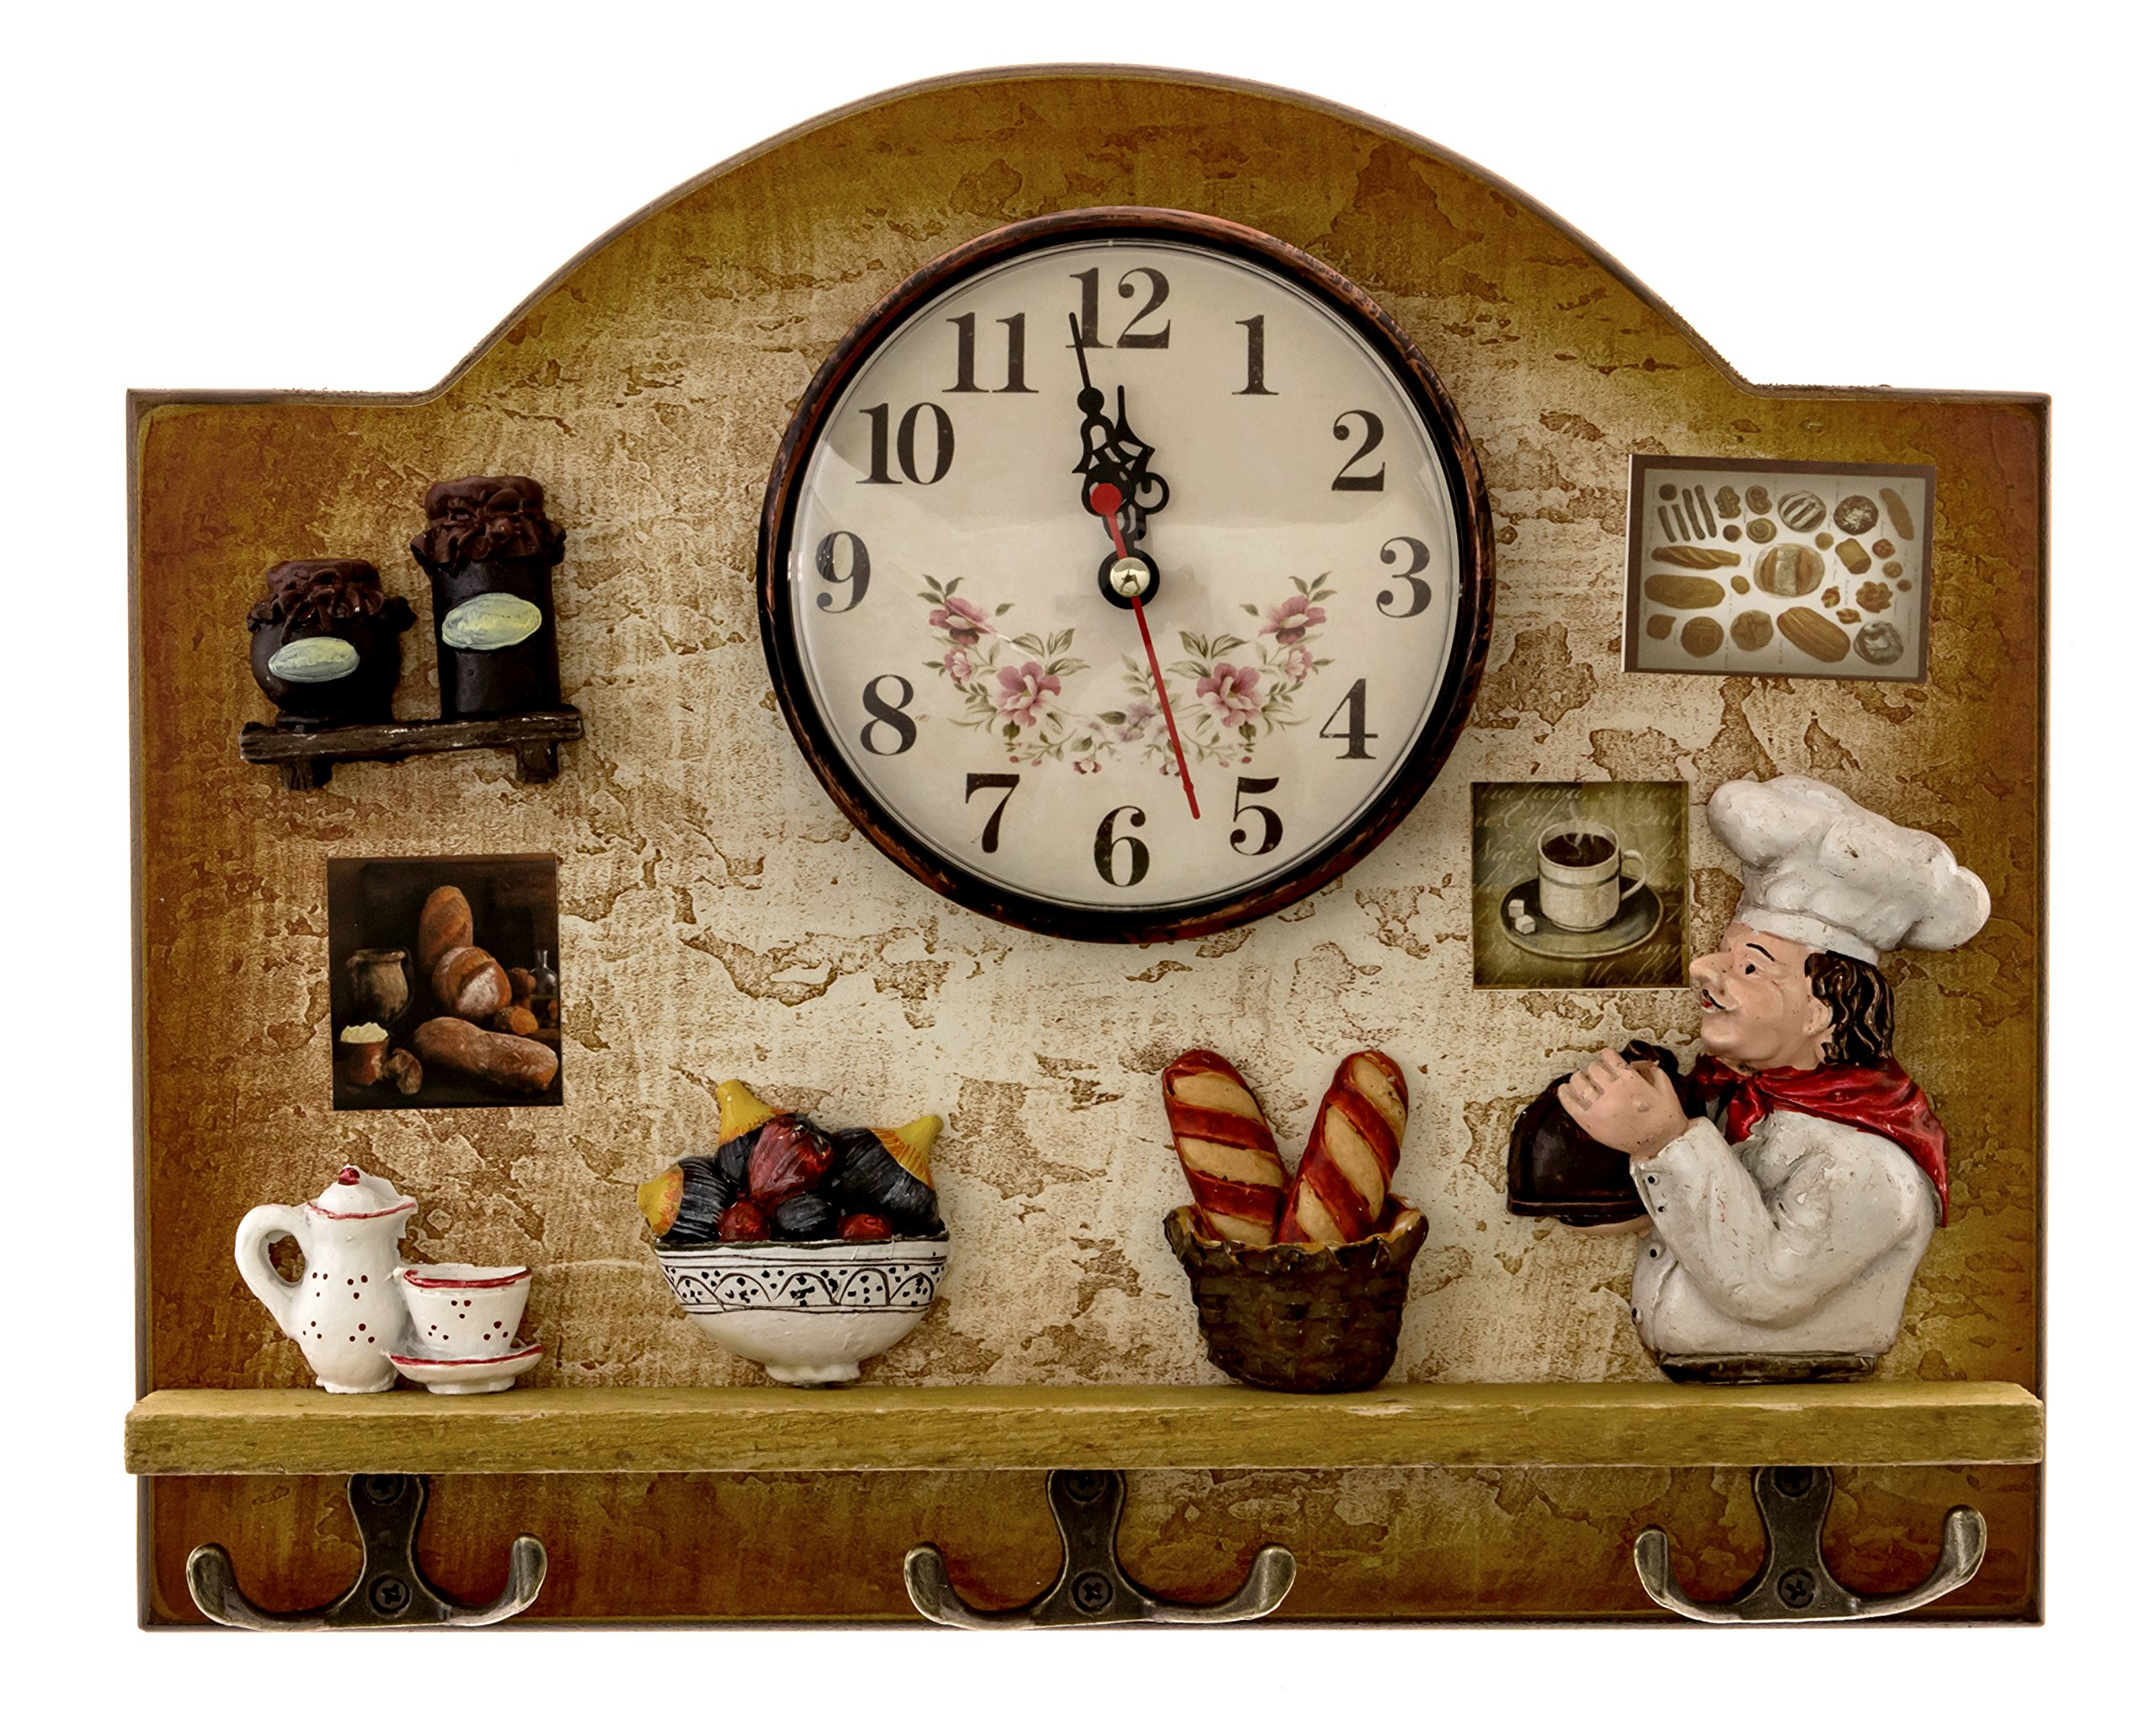 Buy Heartful Home Fat Italian Chef Kitchen Decor Clock With Hooks Unique Idea For A Wedding Or Housewarming Present In Cheap Price On Alibaba Com